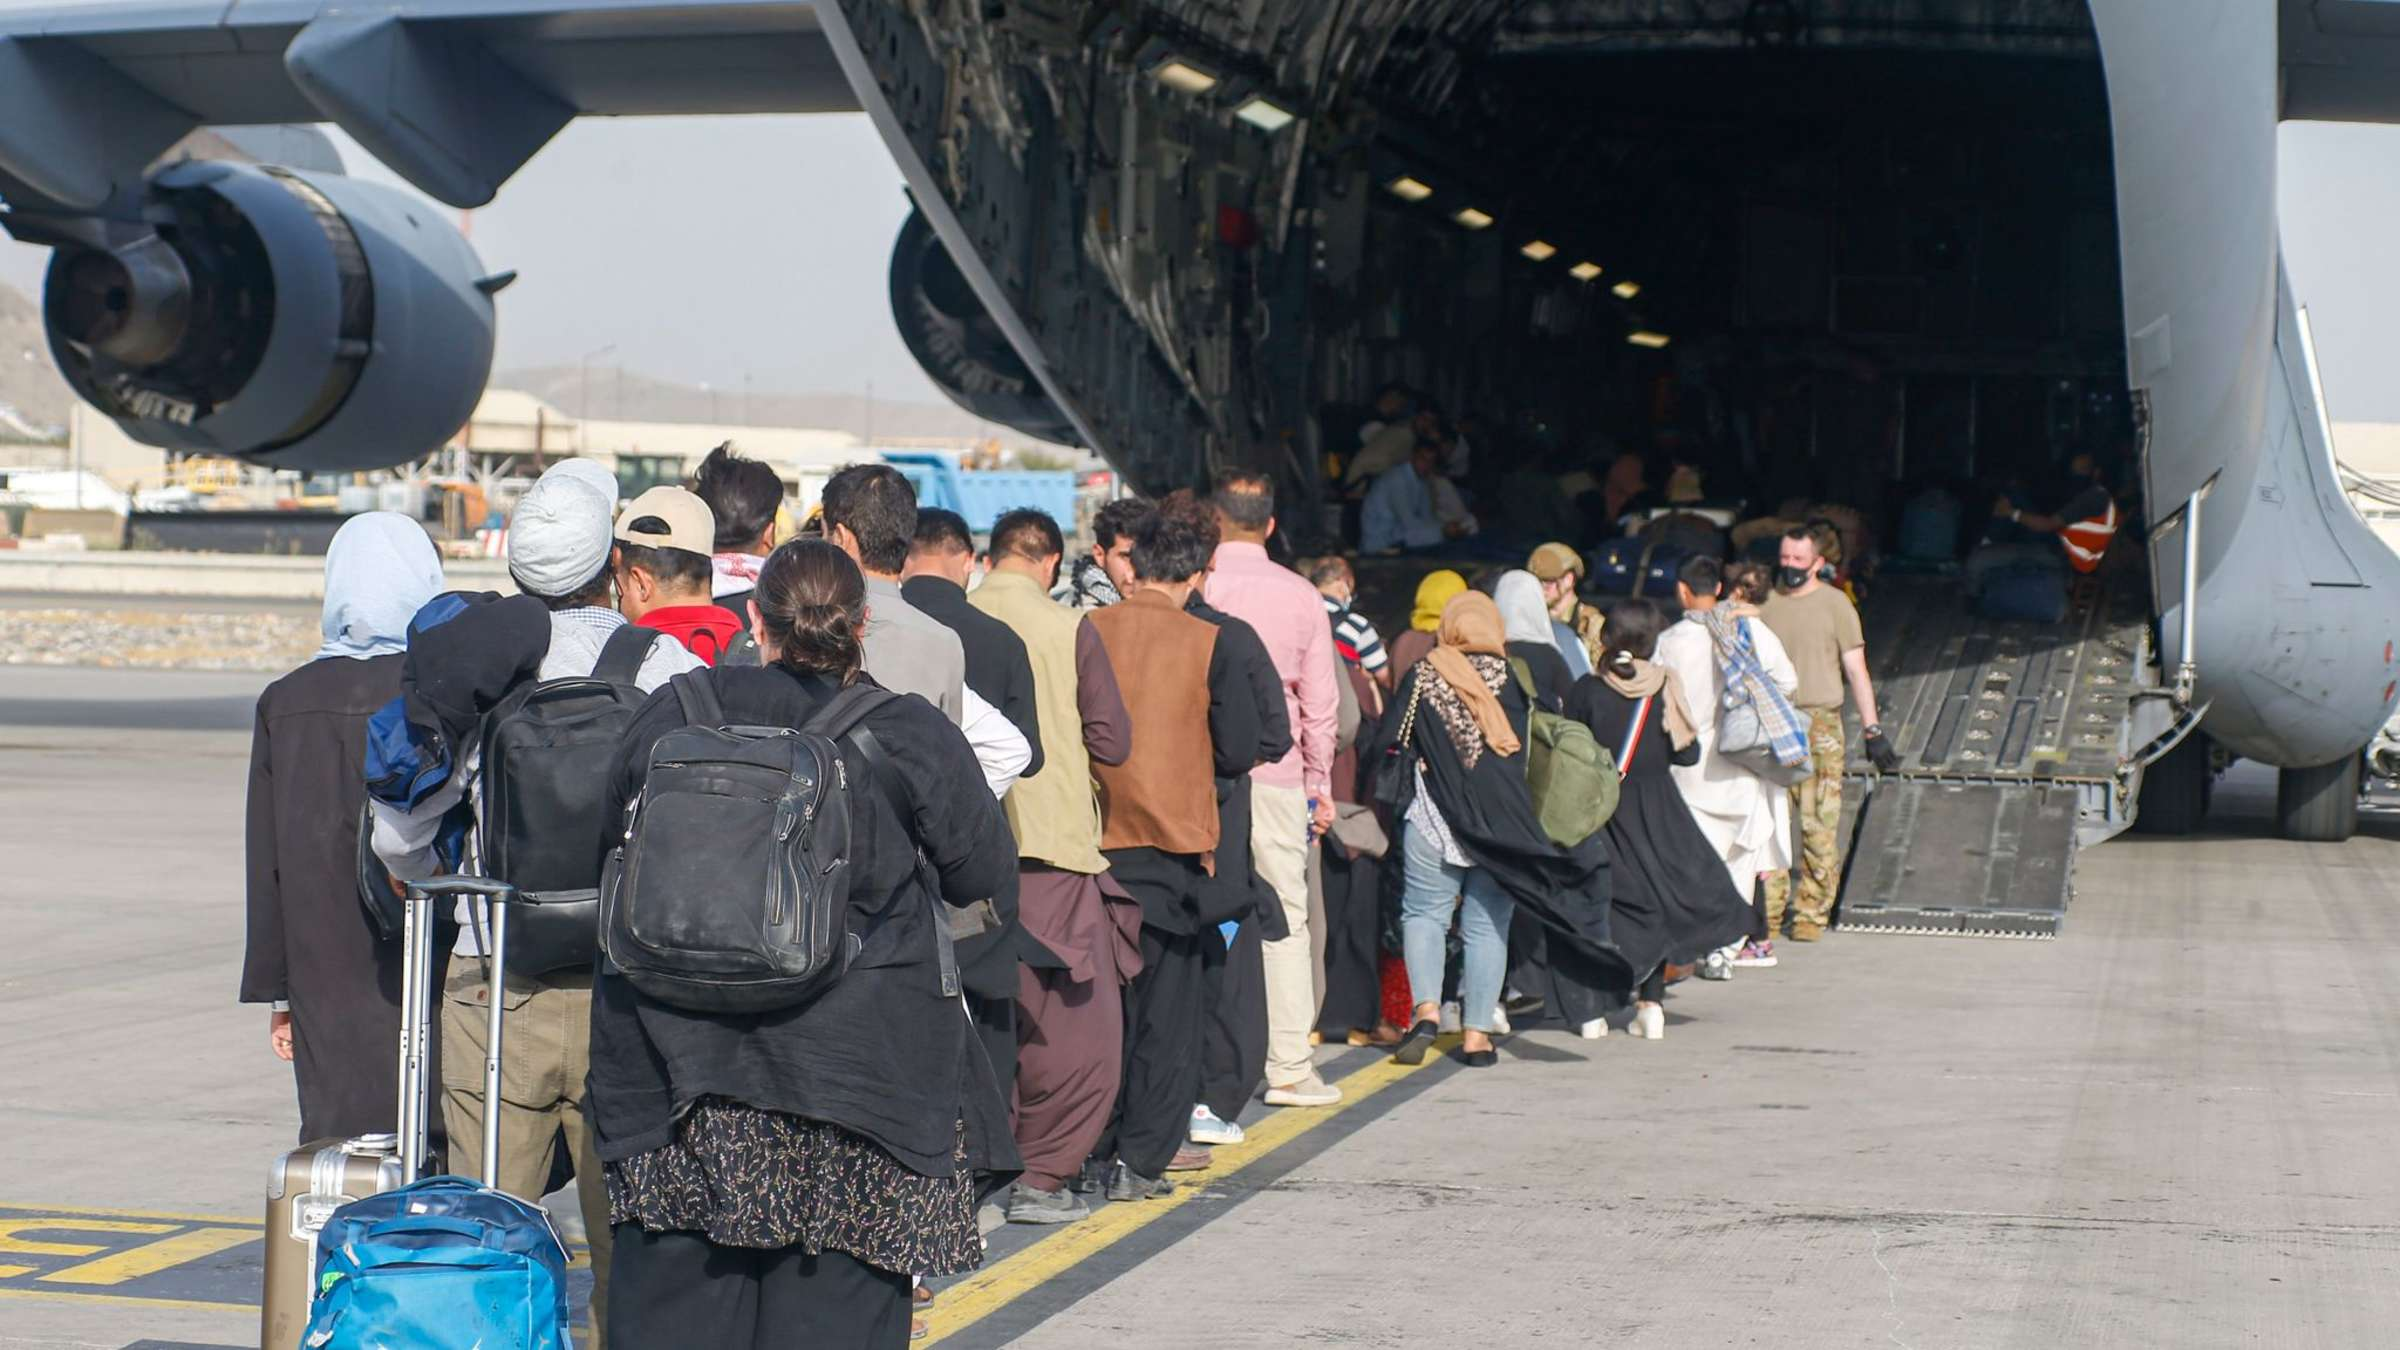 Kuwait Approves Transit of 5,000 Afghan Evacuees to the United States